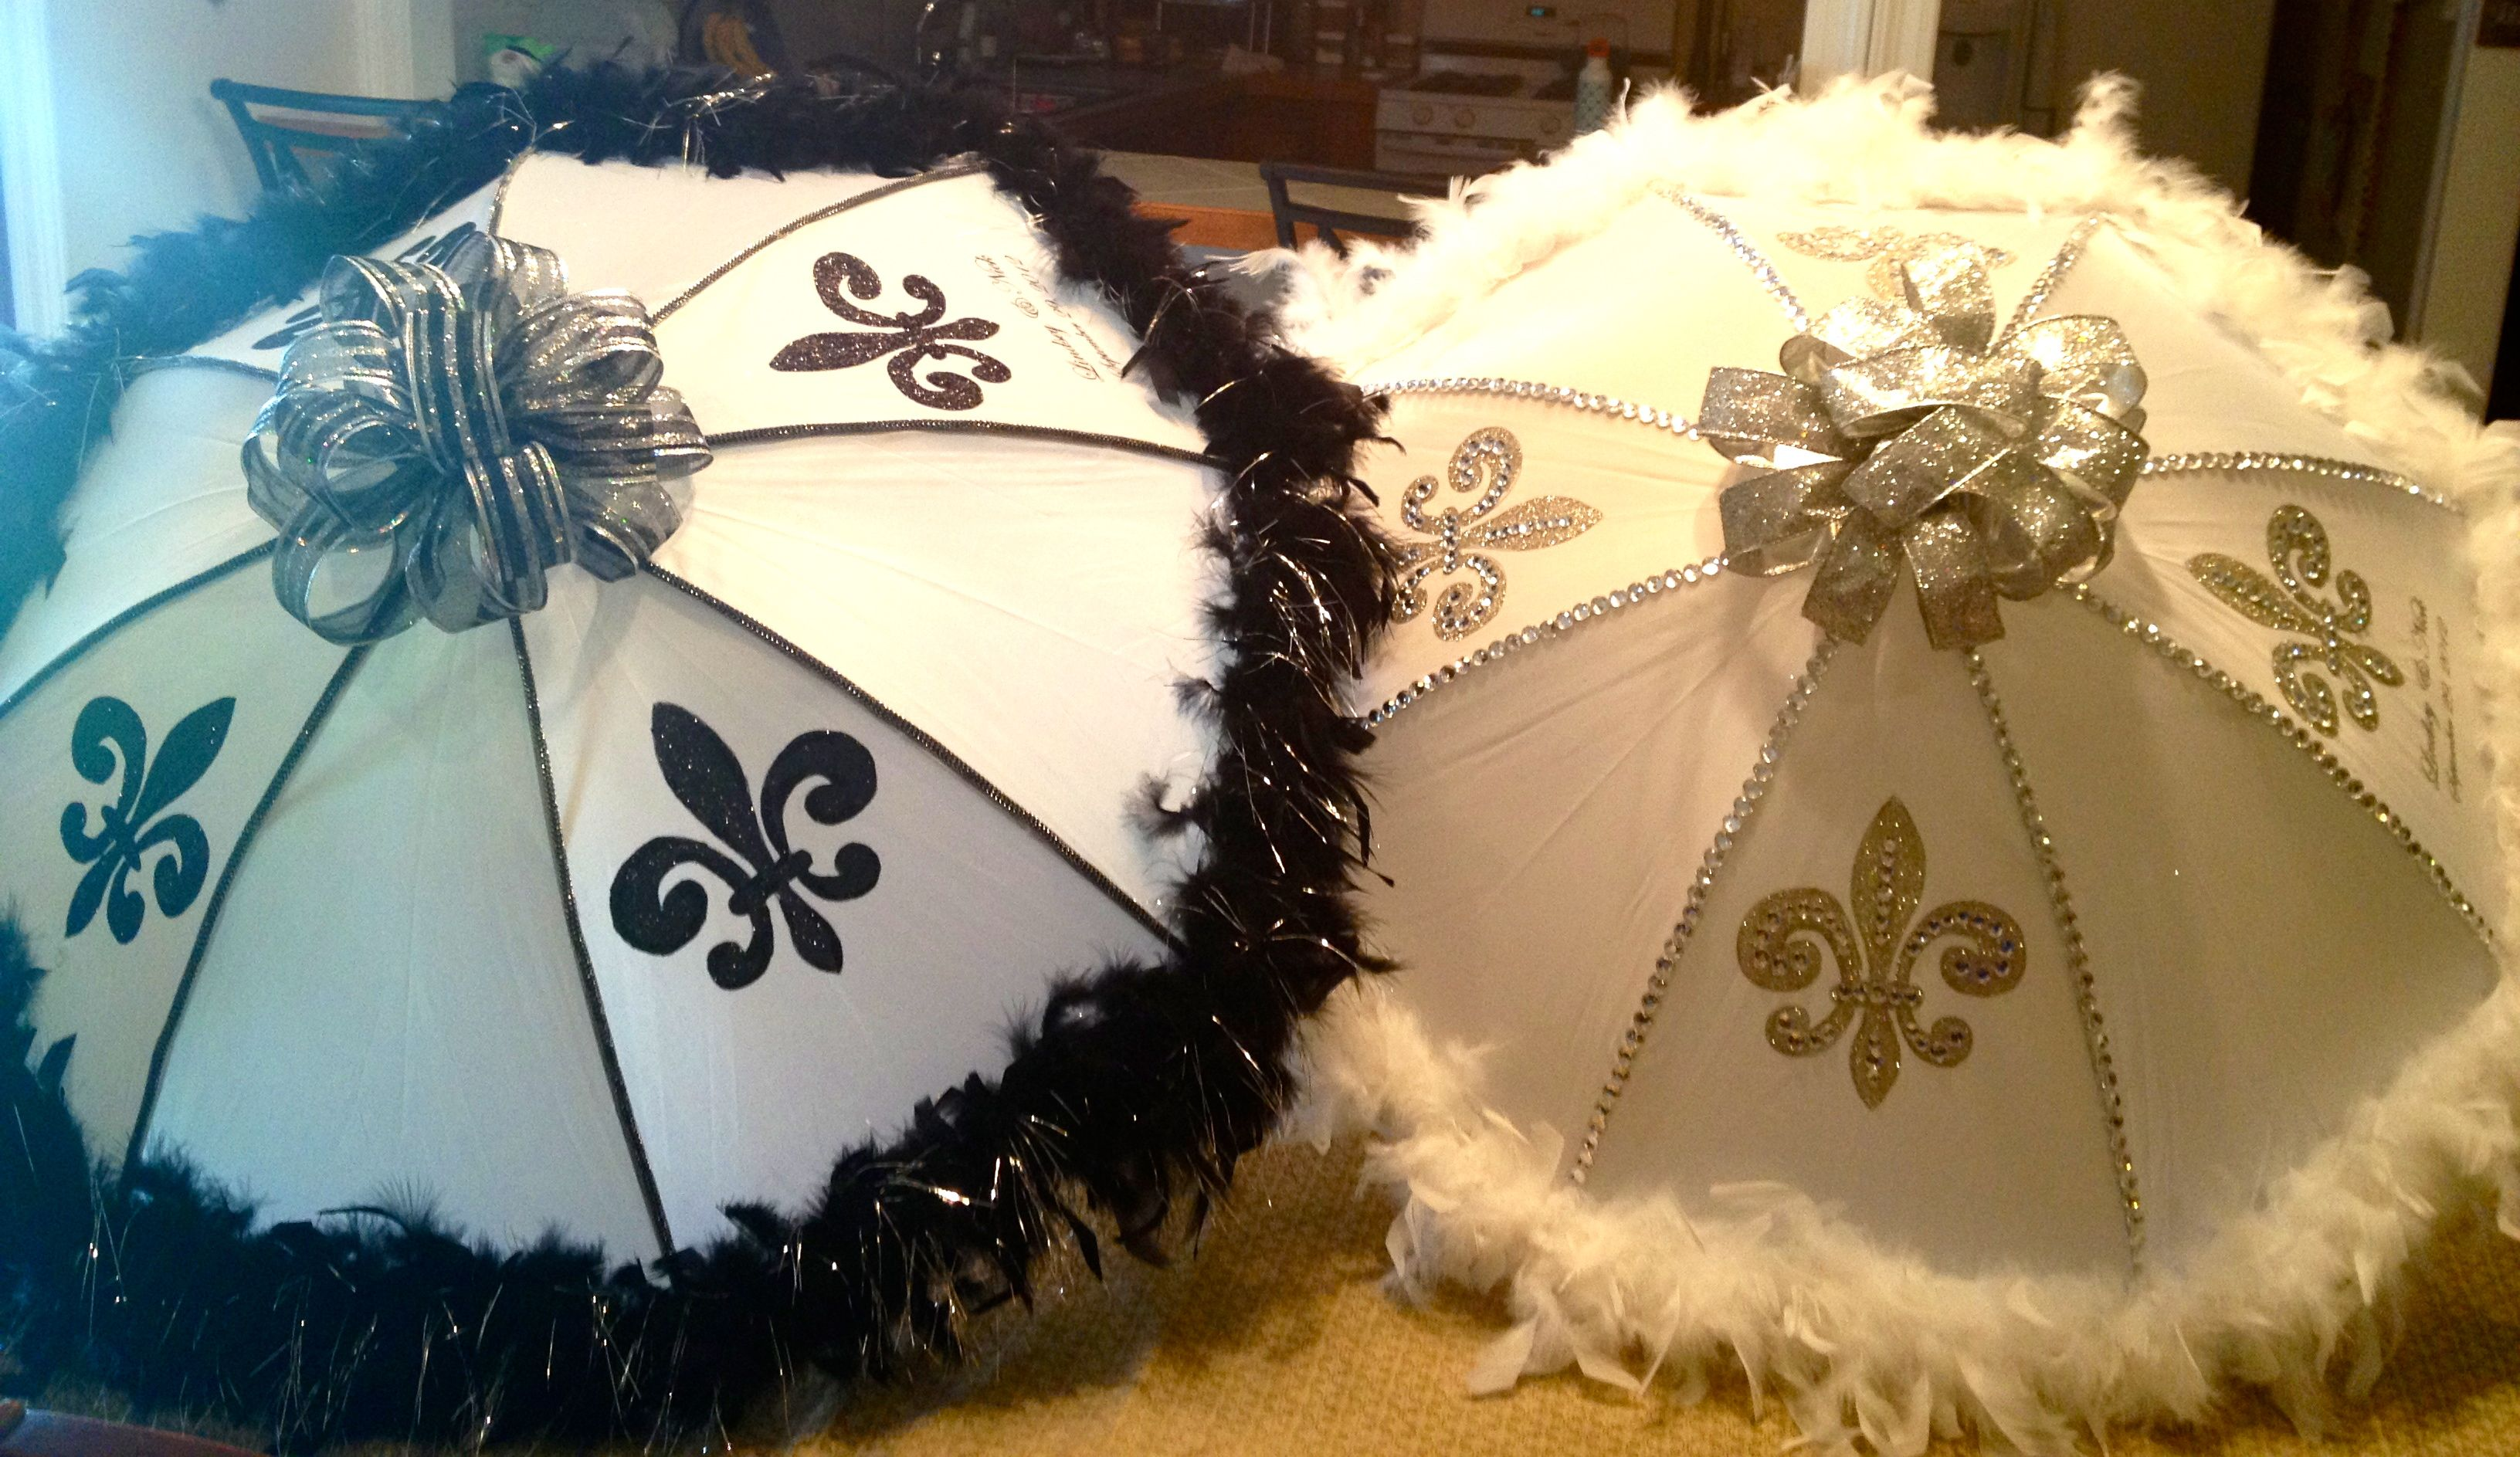 Pin By Twonolagirls On Second Line Umbrellas Umbrella Wedding Mardi Gras Party Theme Mardi Gras Wedding